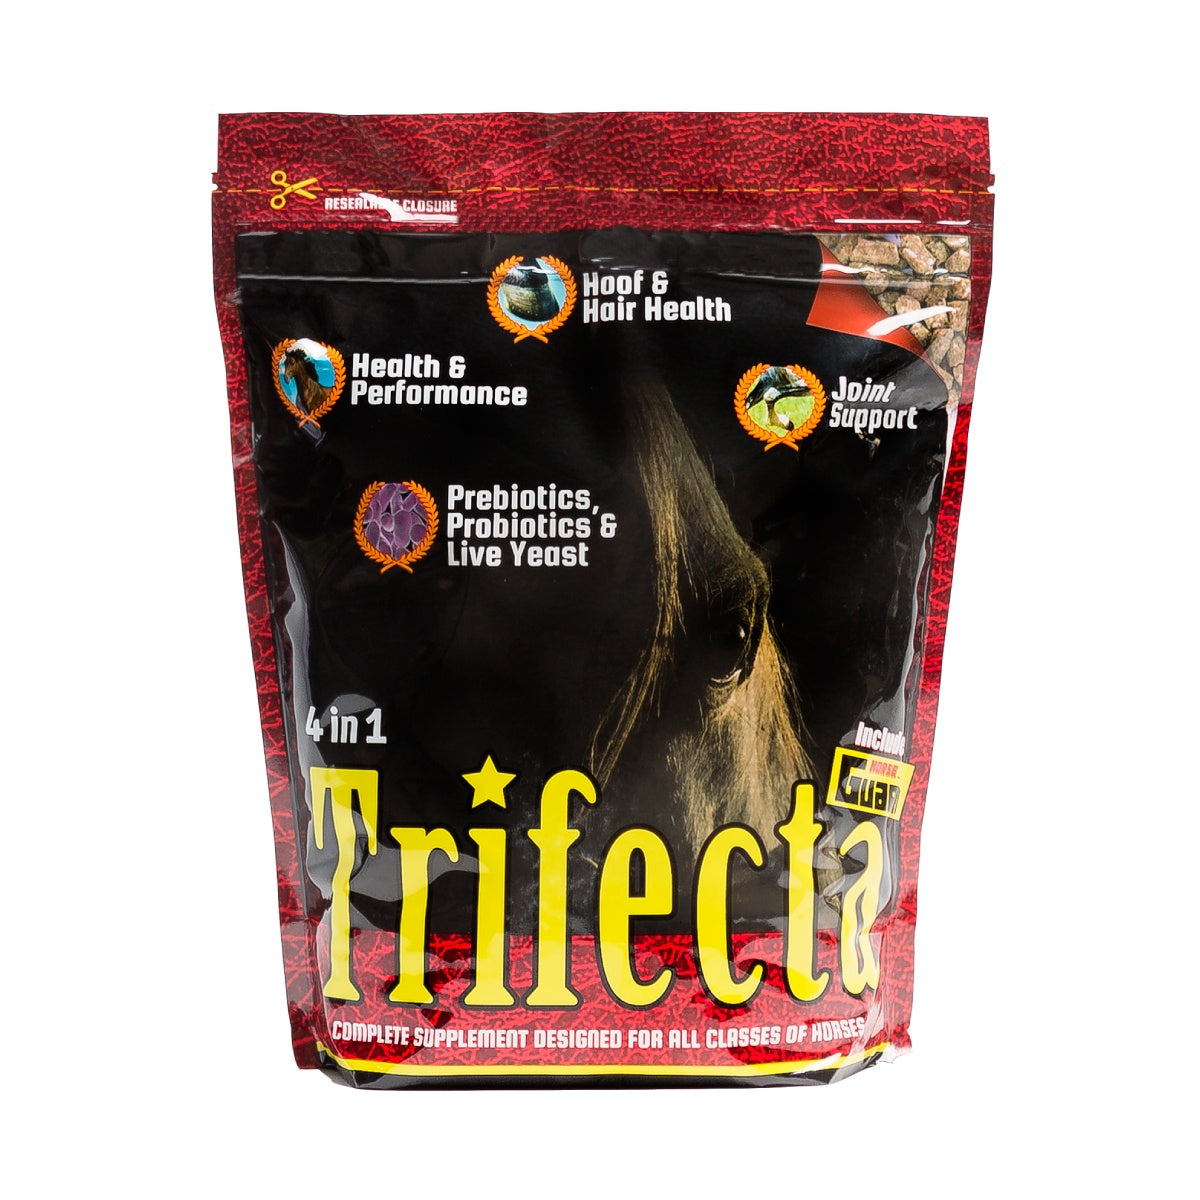 Trifecta 10lb Front Supplement by Horse Guard